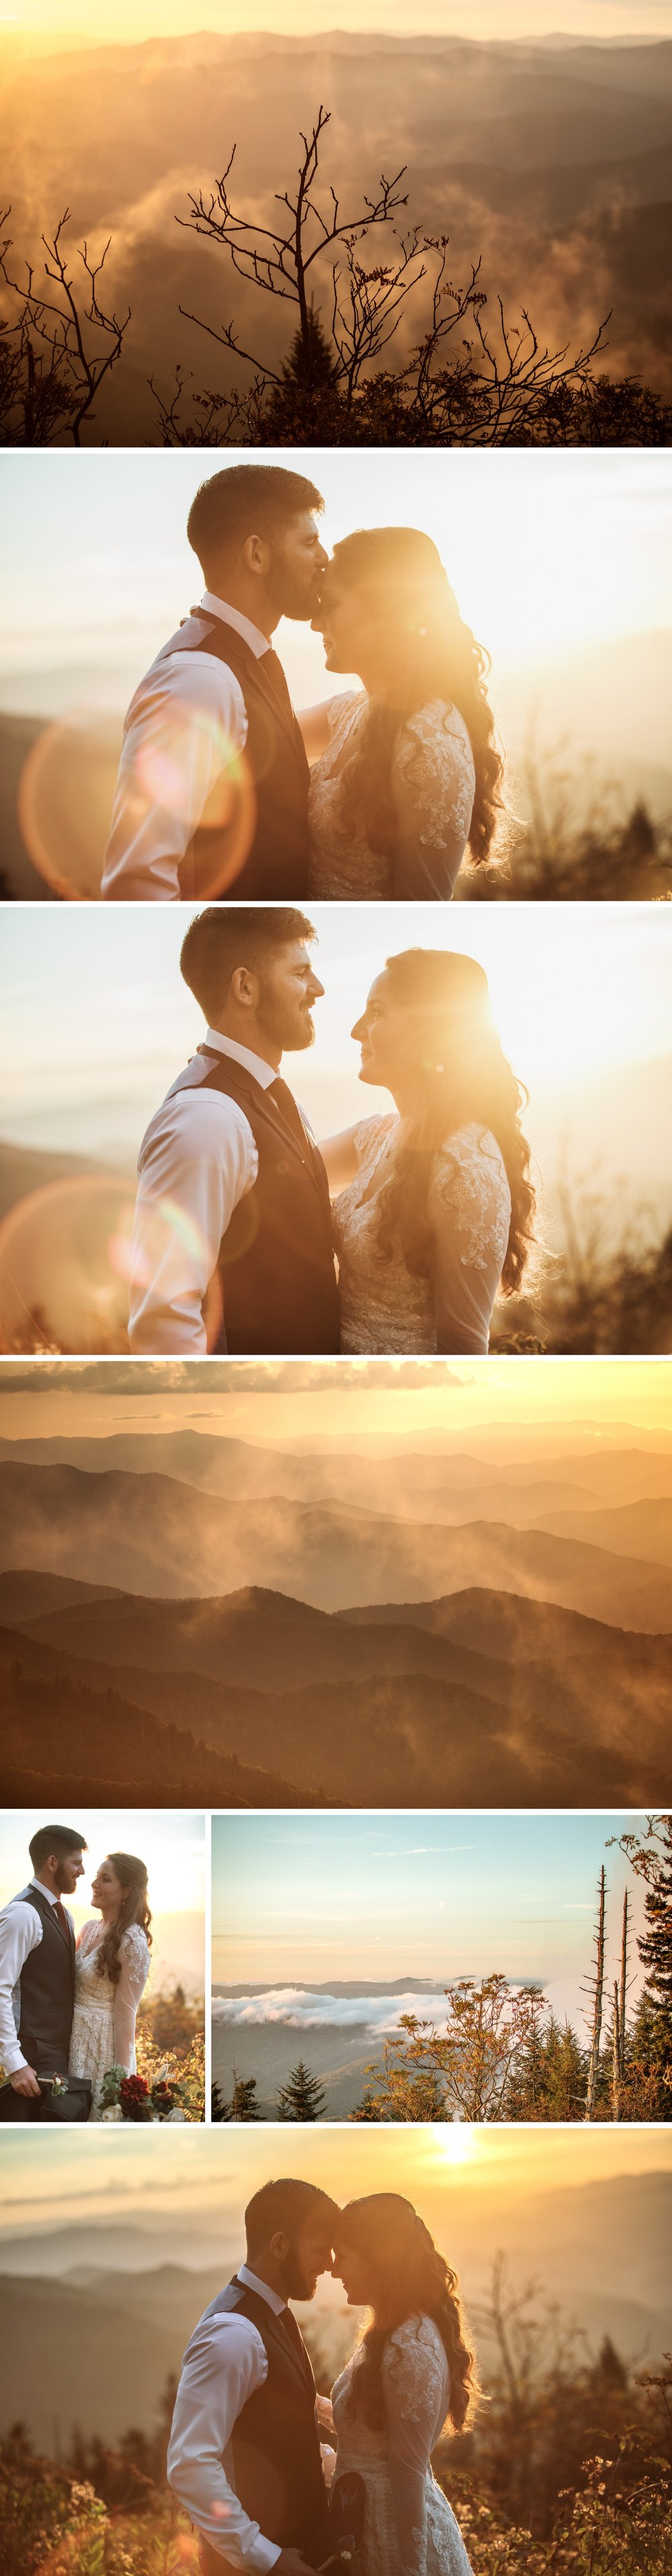 Great Smoky Mountain National Park Elopement- Cole + Rachel- Photographer Shaina DeCiryan-11.201814.jpg